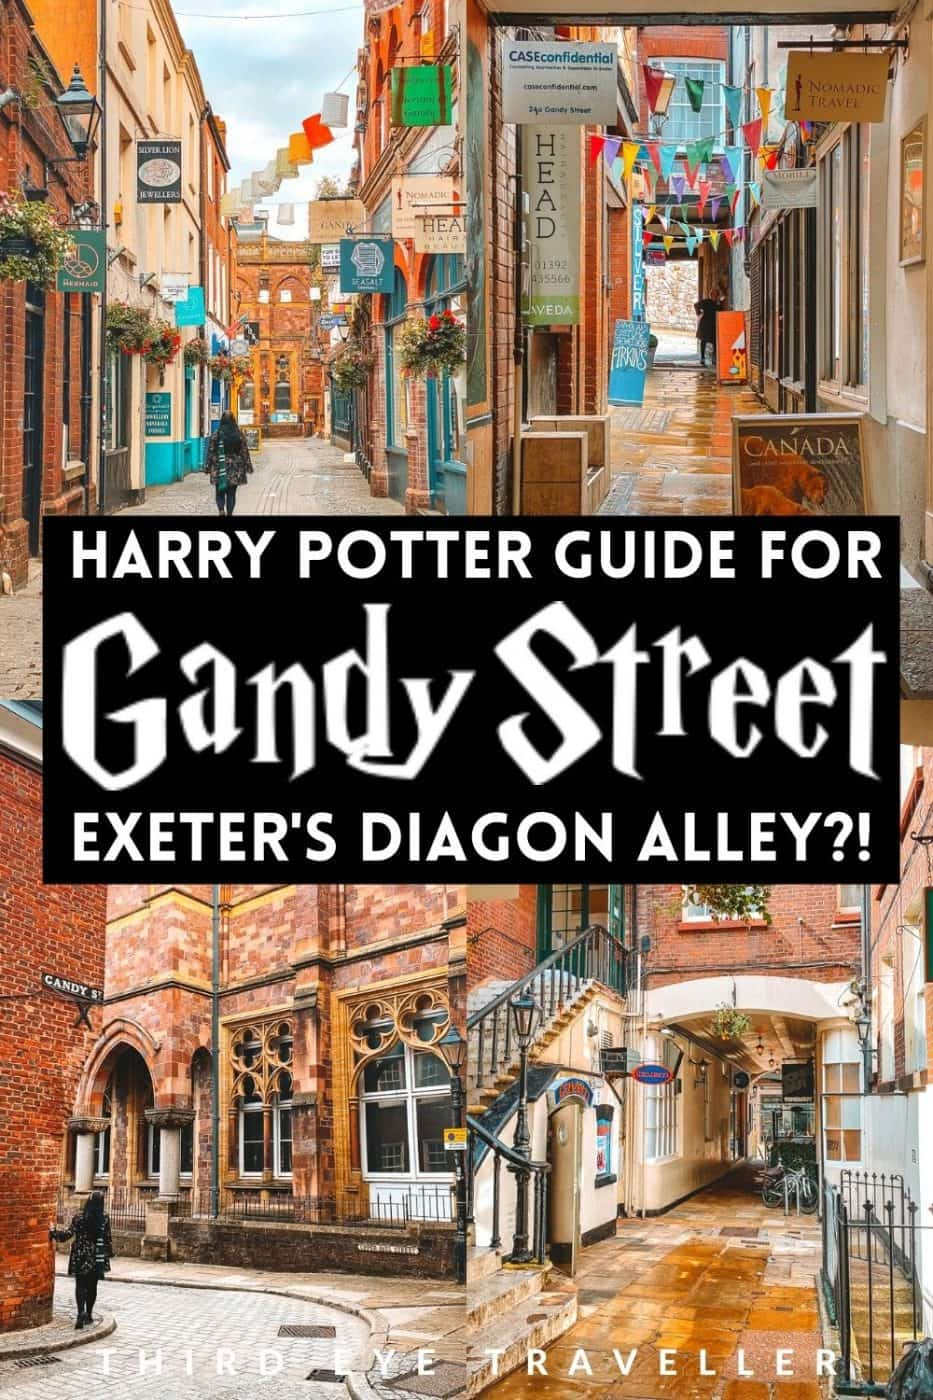 Harry Potter Gandy Street Exeter Diagon Alley